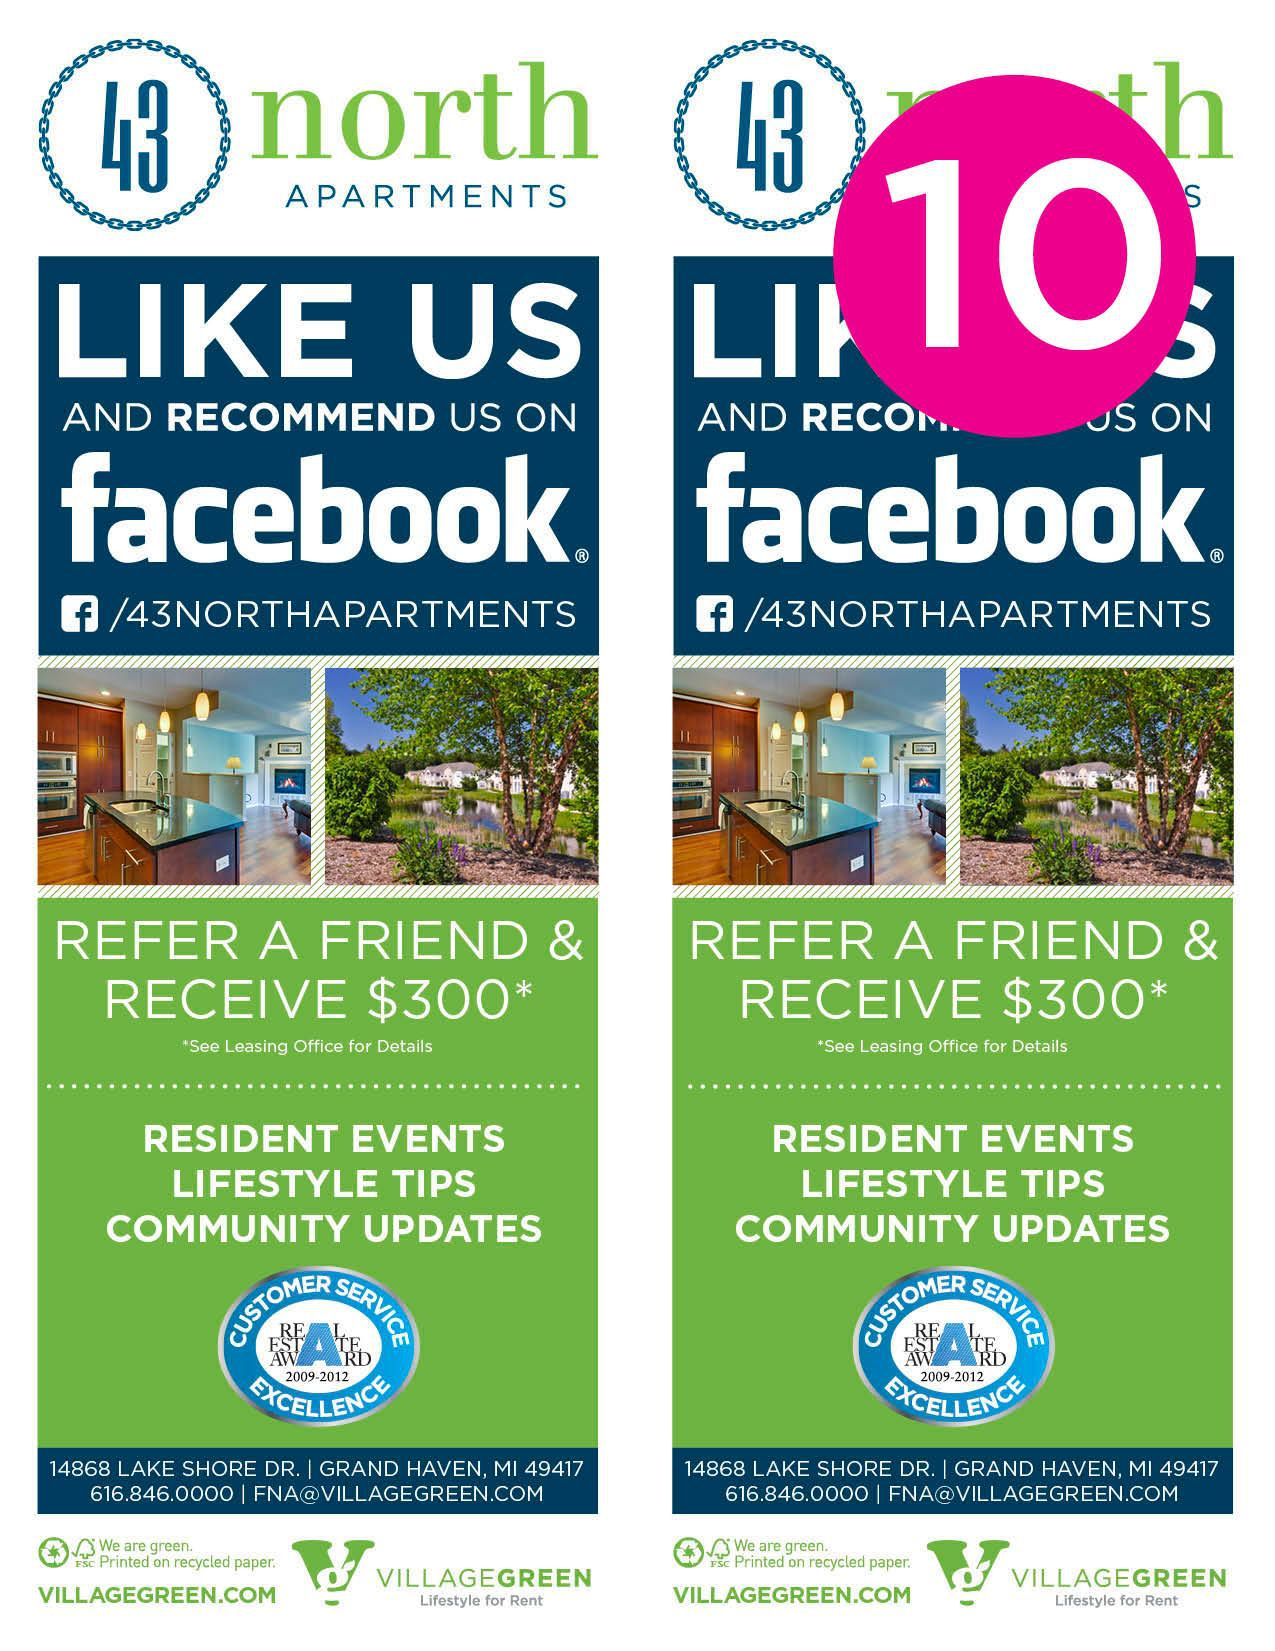 004 Amazing Like U On Facebook Template Highest Clarity  Free Flyer Email Find PosterFull